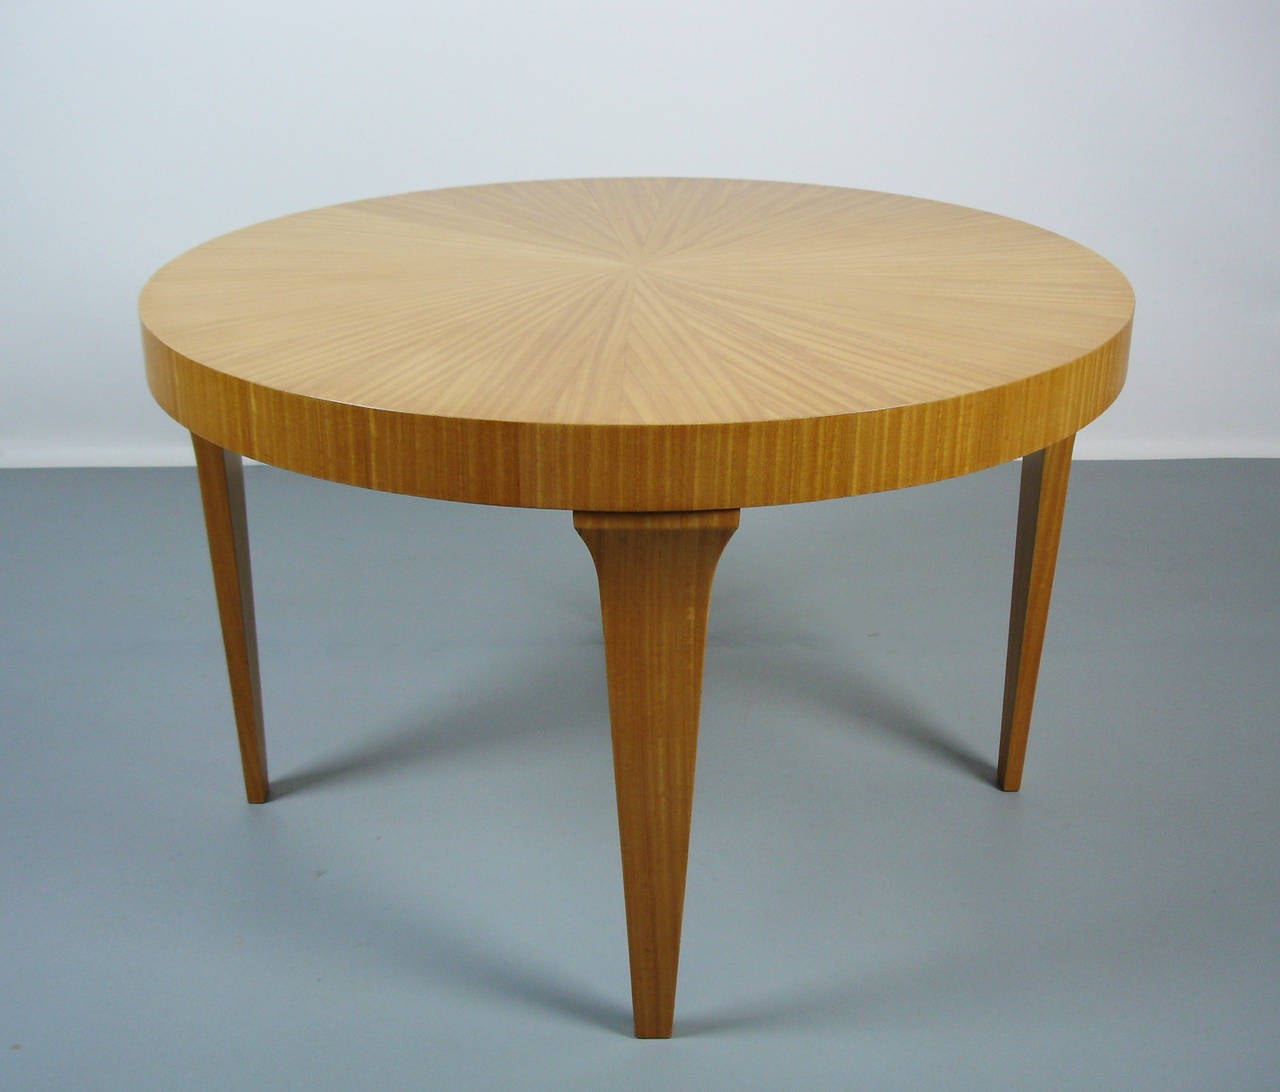 Coffee Table 1950s: A Circular 1950's Coffee Table For Sale At 1stdibs